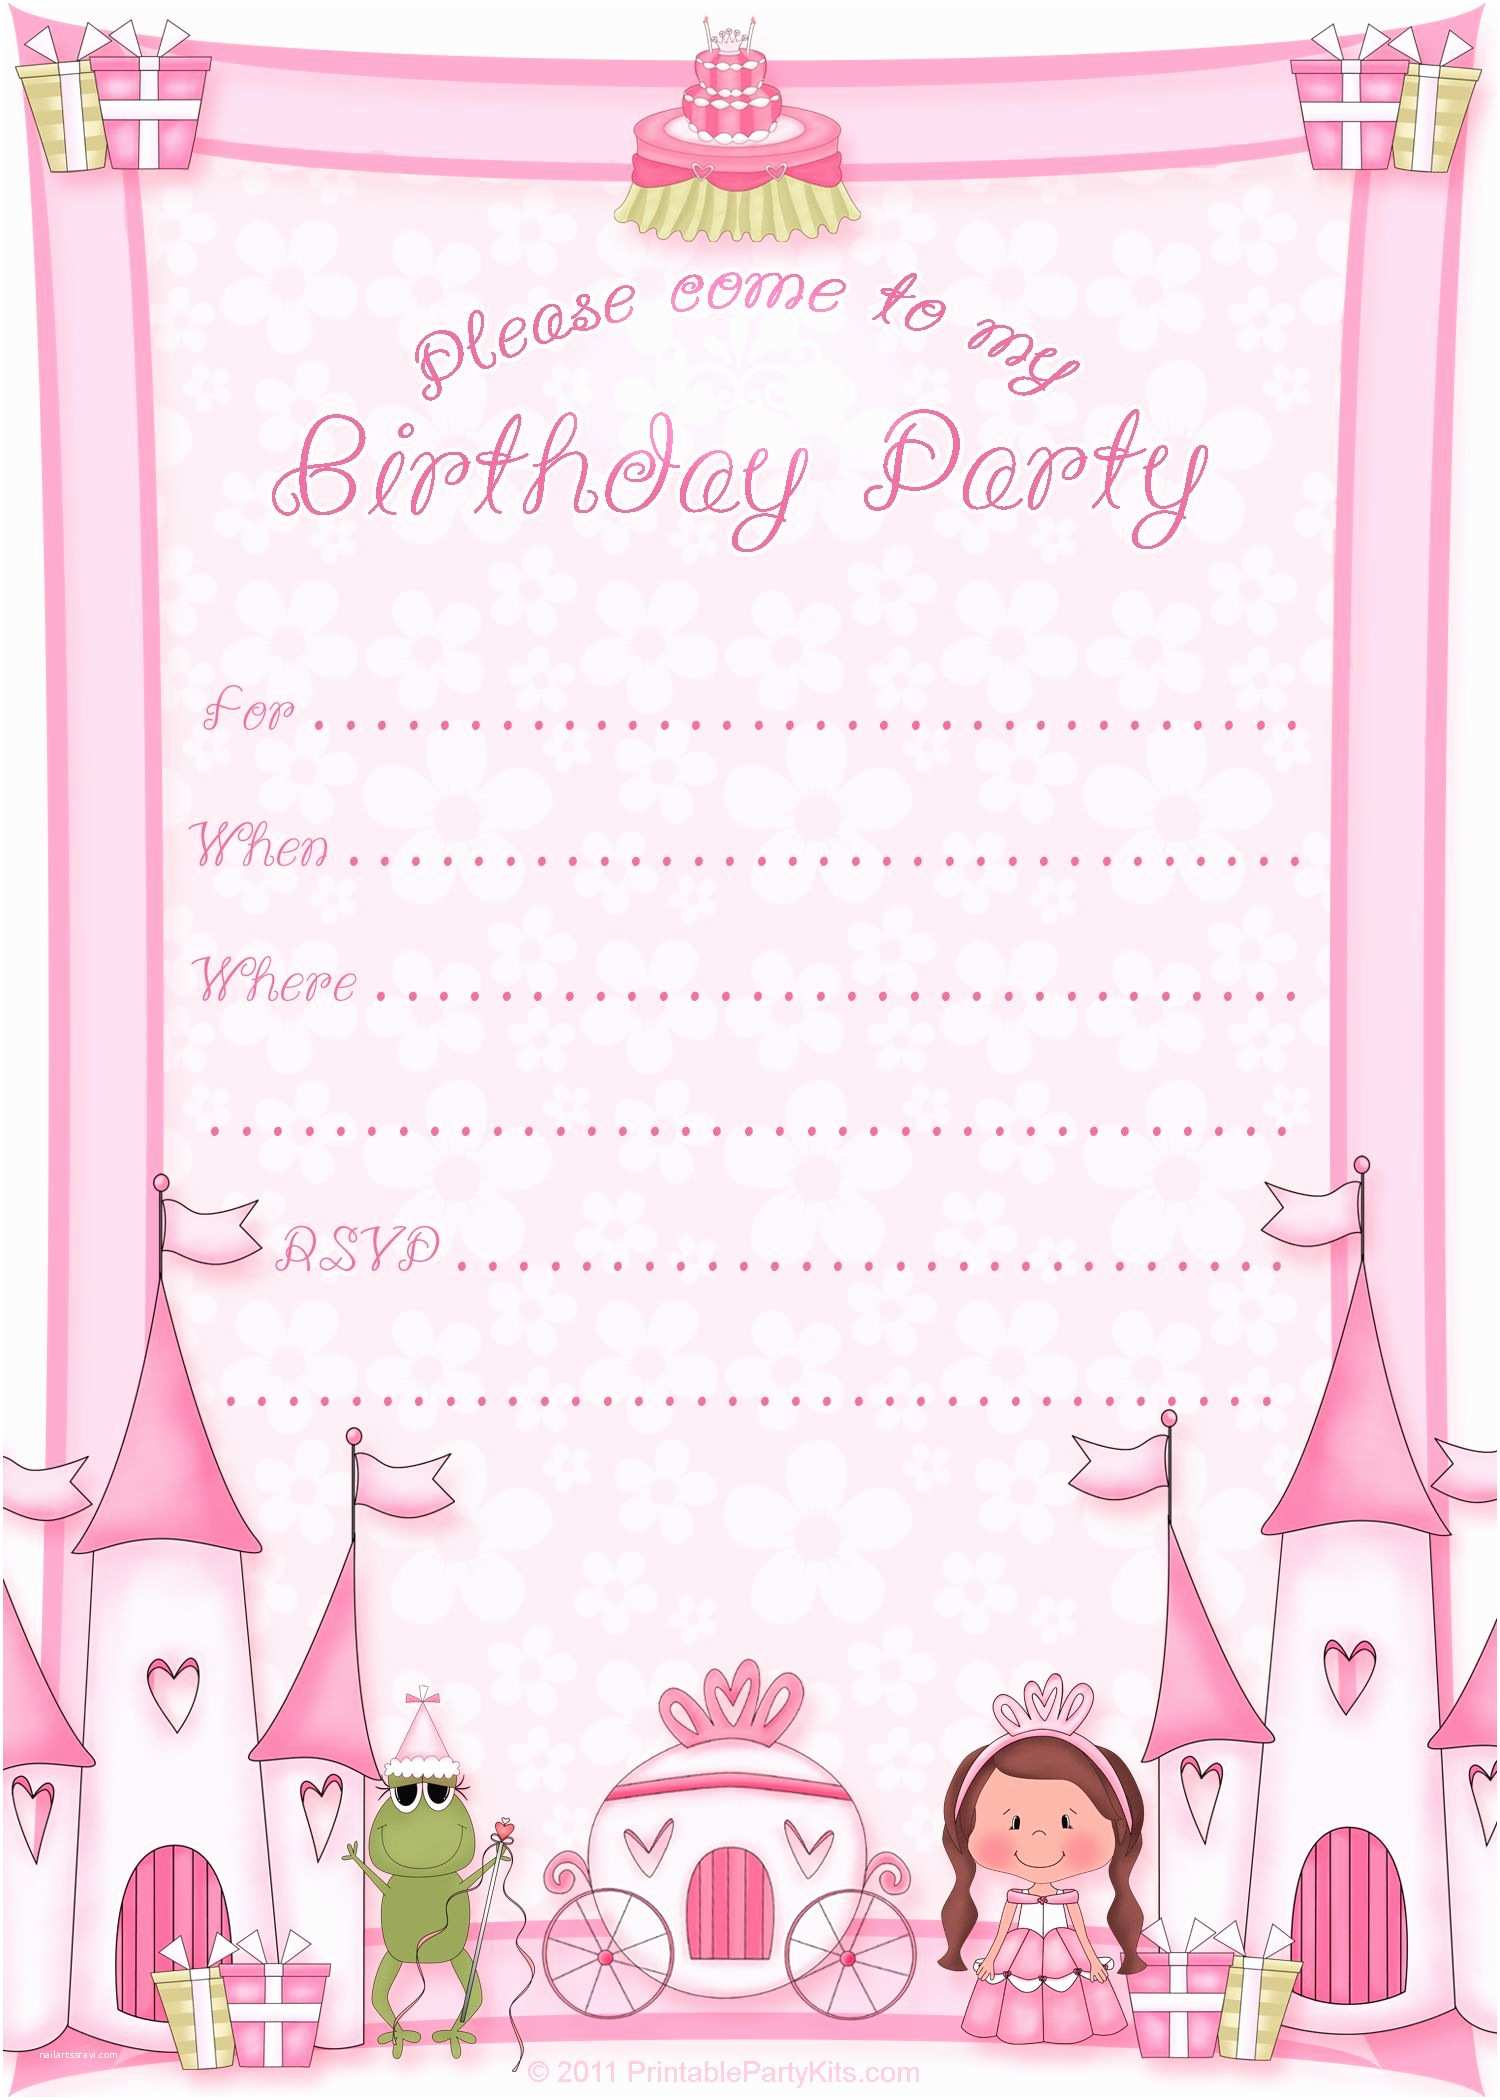 Princess Birthday Party Invitations Free Printable Invitation Pinned for Kidfolio the